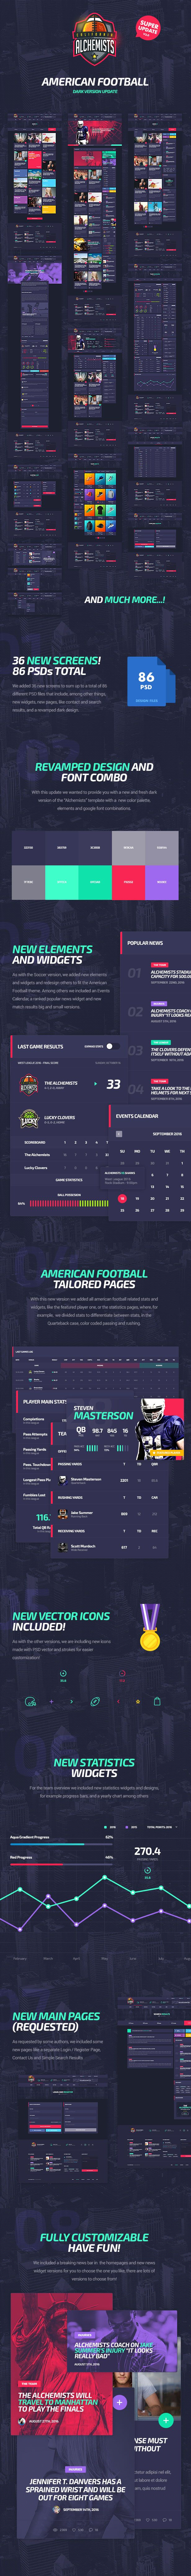 The Alchemists - Sports News PSD Template V4.0 + eSports & Gaming - 11